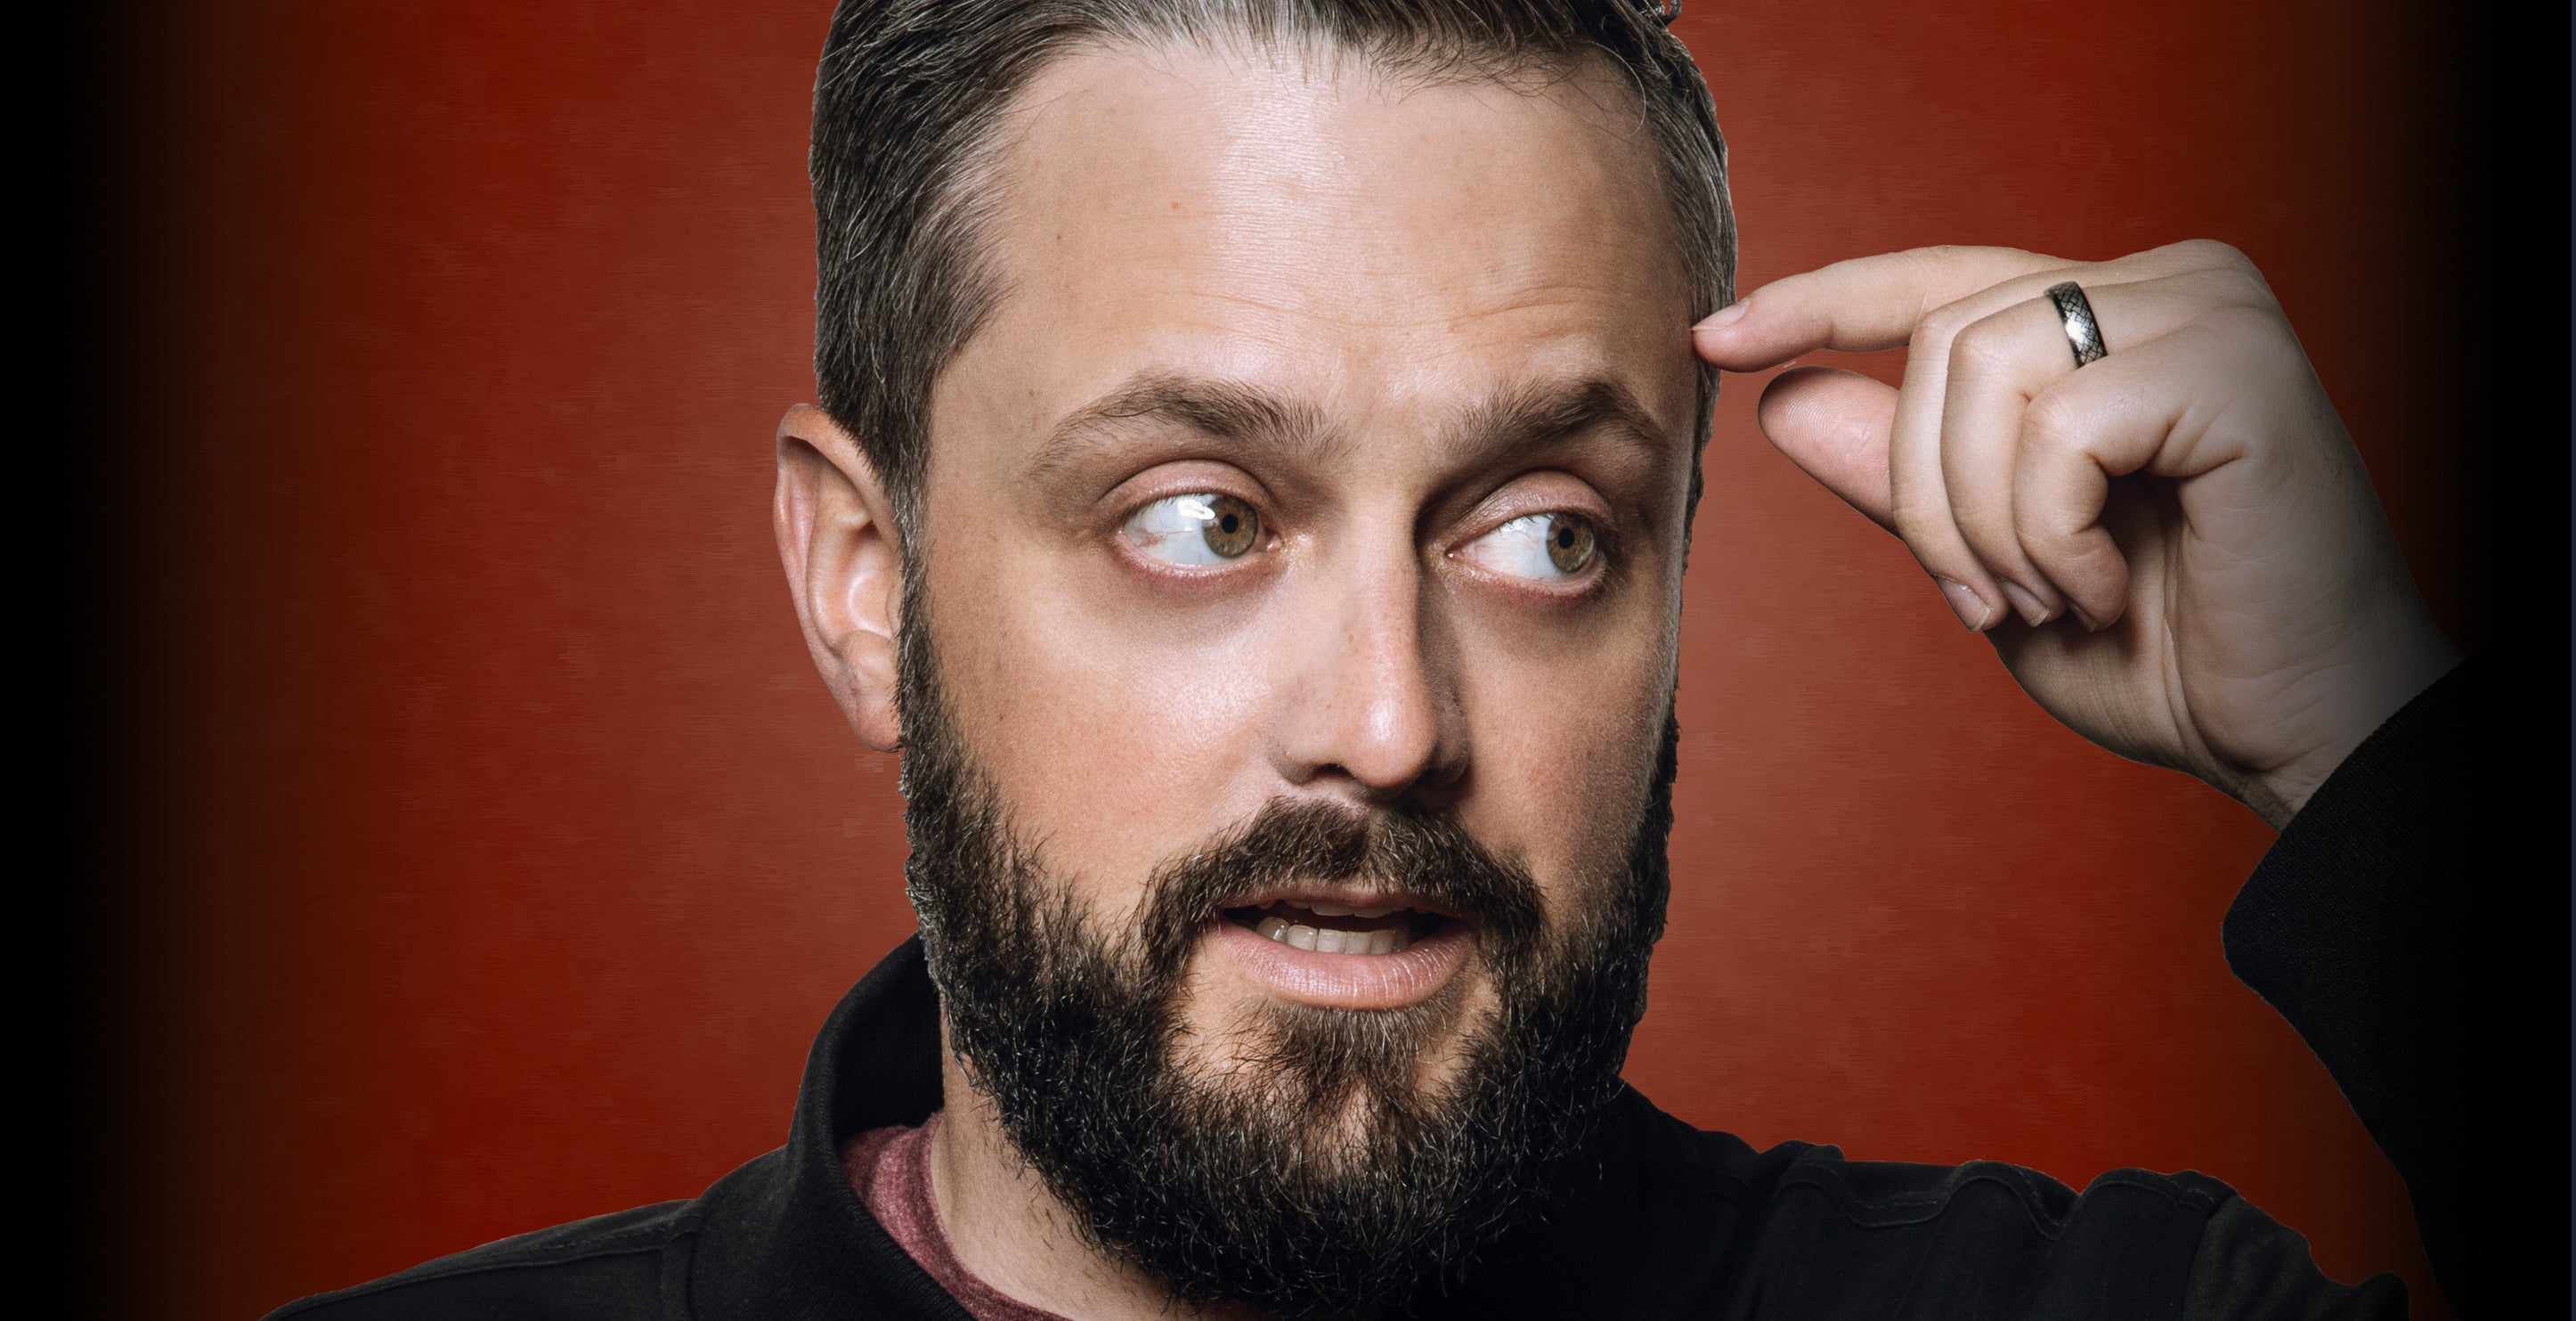 *RESCHEDULED* Nate Bargatze